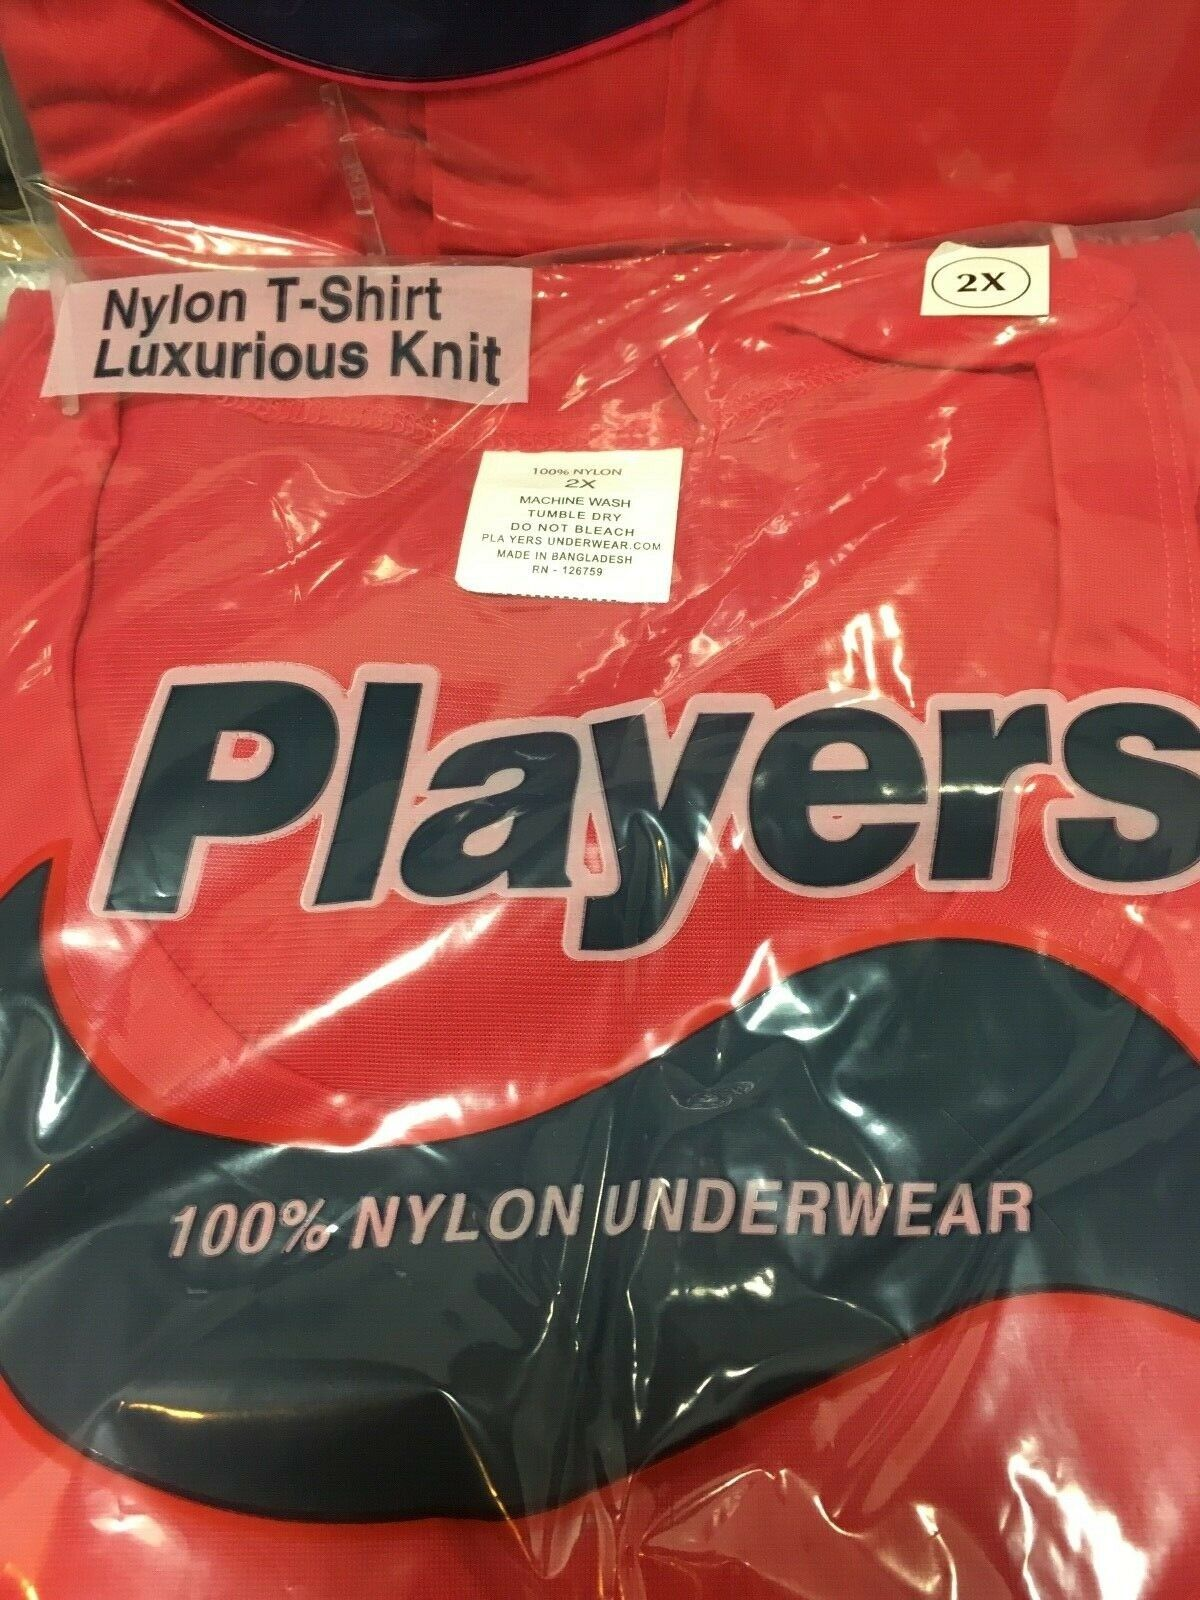 ONE NEW PLAYERS MEN'S NYLON T-SHIRT OR BOXER LUXURIOUS KNIT BLACK-NAVY-RED Clothing, Shoes & Accessories